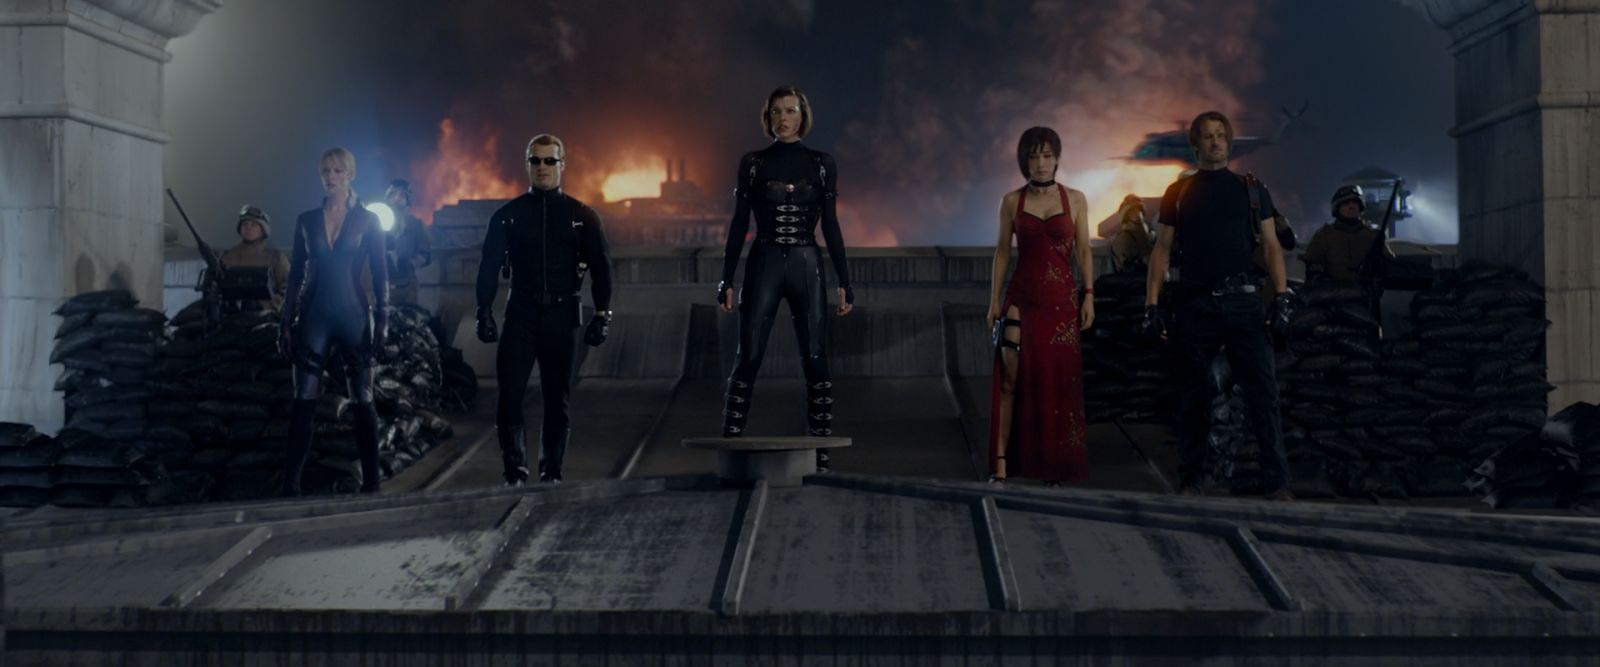 Resident Evil The Final Chapter Premiere In: Resident Evil: The Final Chapter: Un Premier Teaser